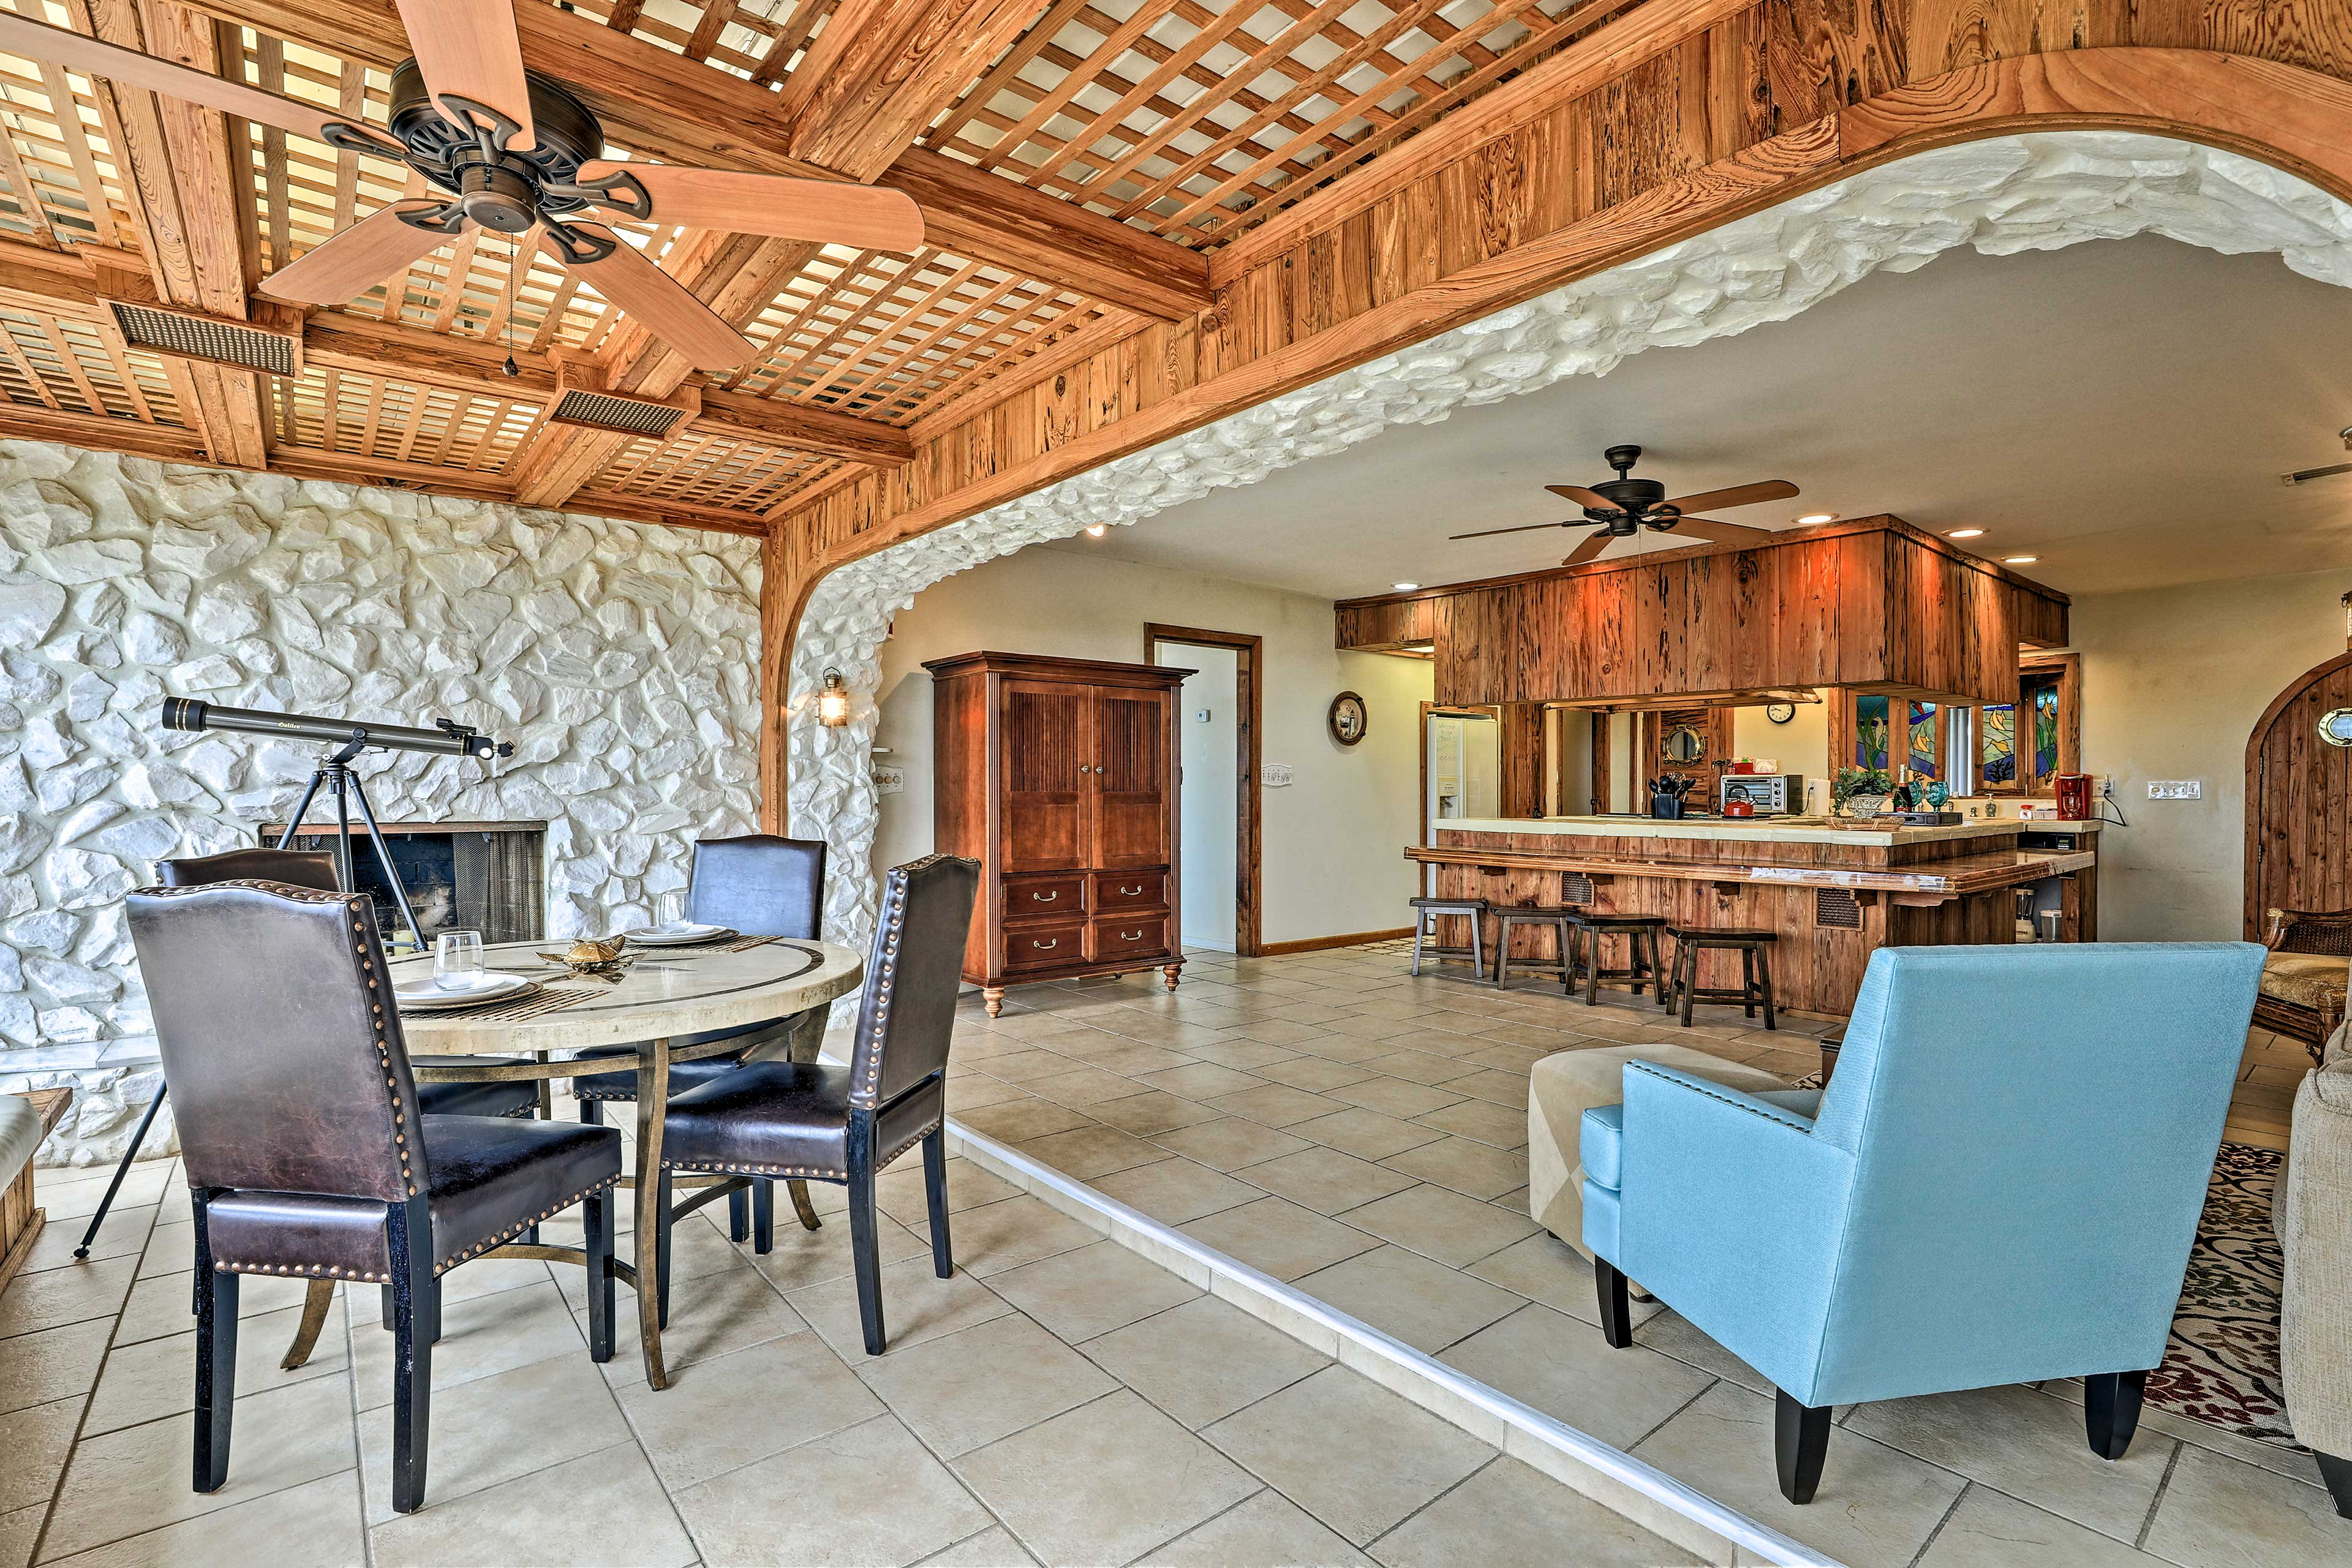 Stay at this 2-bed, 2-bath vacation rental for a home-away-from-home experience.